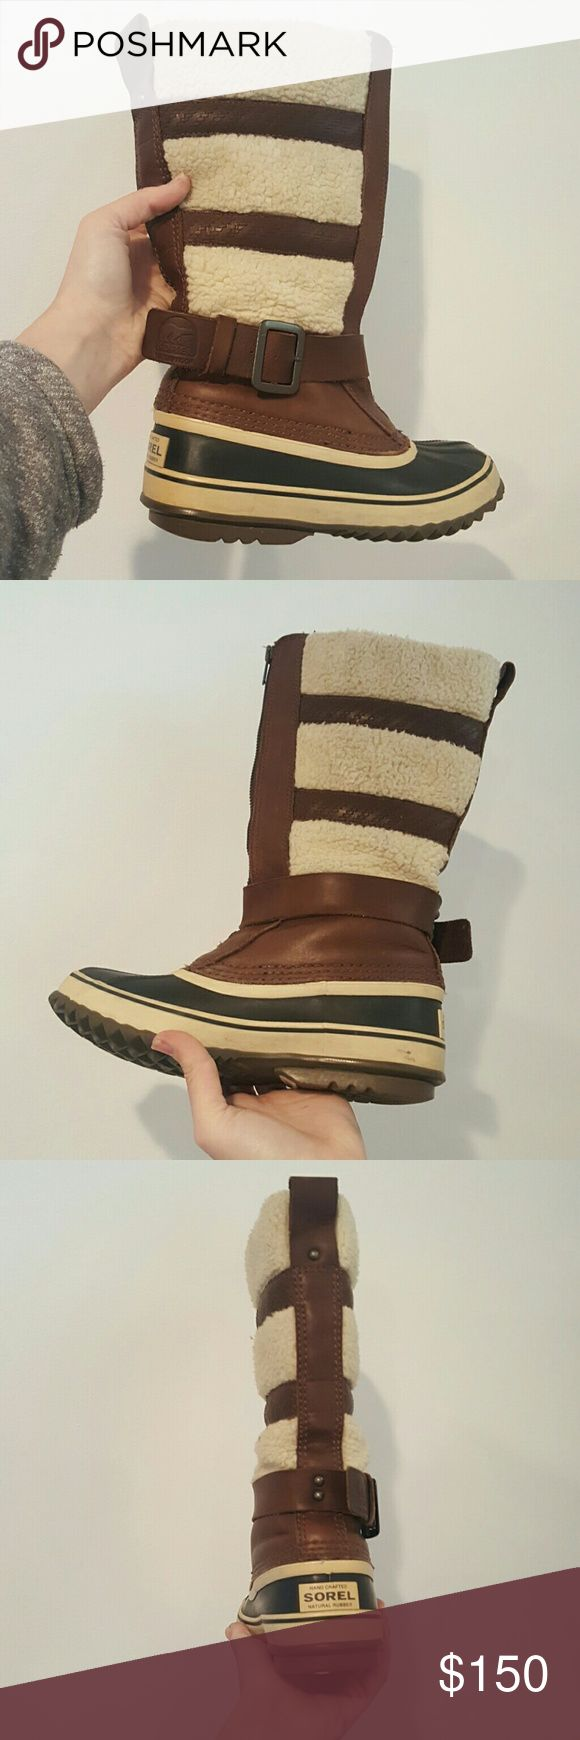 SOREL HELEN OF THE TUNDRA SIZE 5 WOMENS BOOTS SOREL HELEN OF THE TUNDRA BROWN SHEARLING ZIP UP WATERPROOF RAIN AND SNOWBOOTS SIZE 5 EUC WORN ONCE Sorel Shoes Winter & Rain Boots